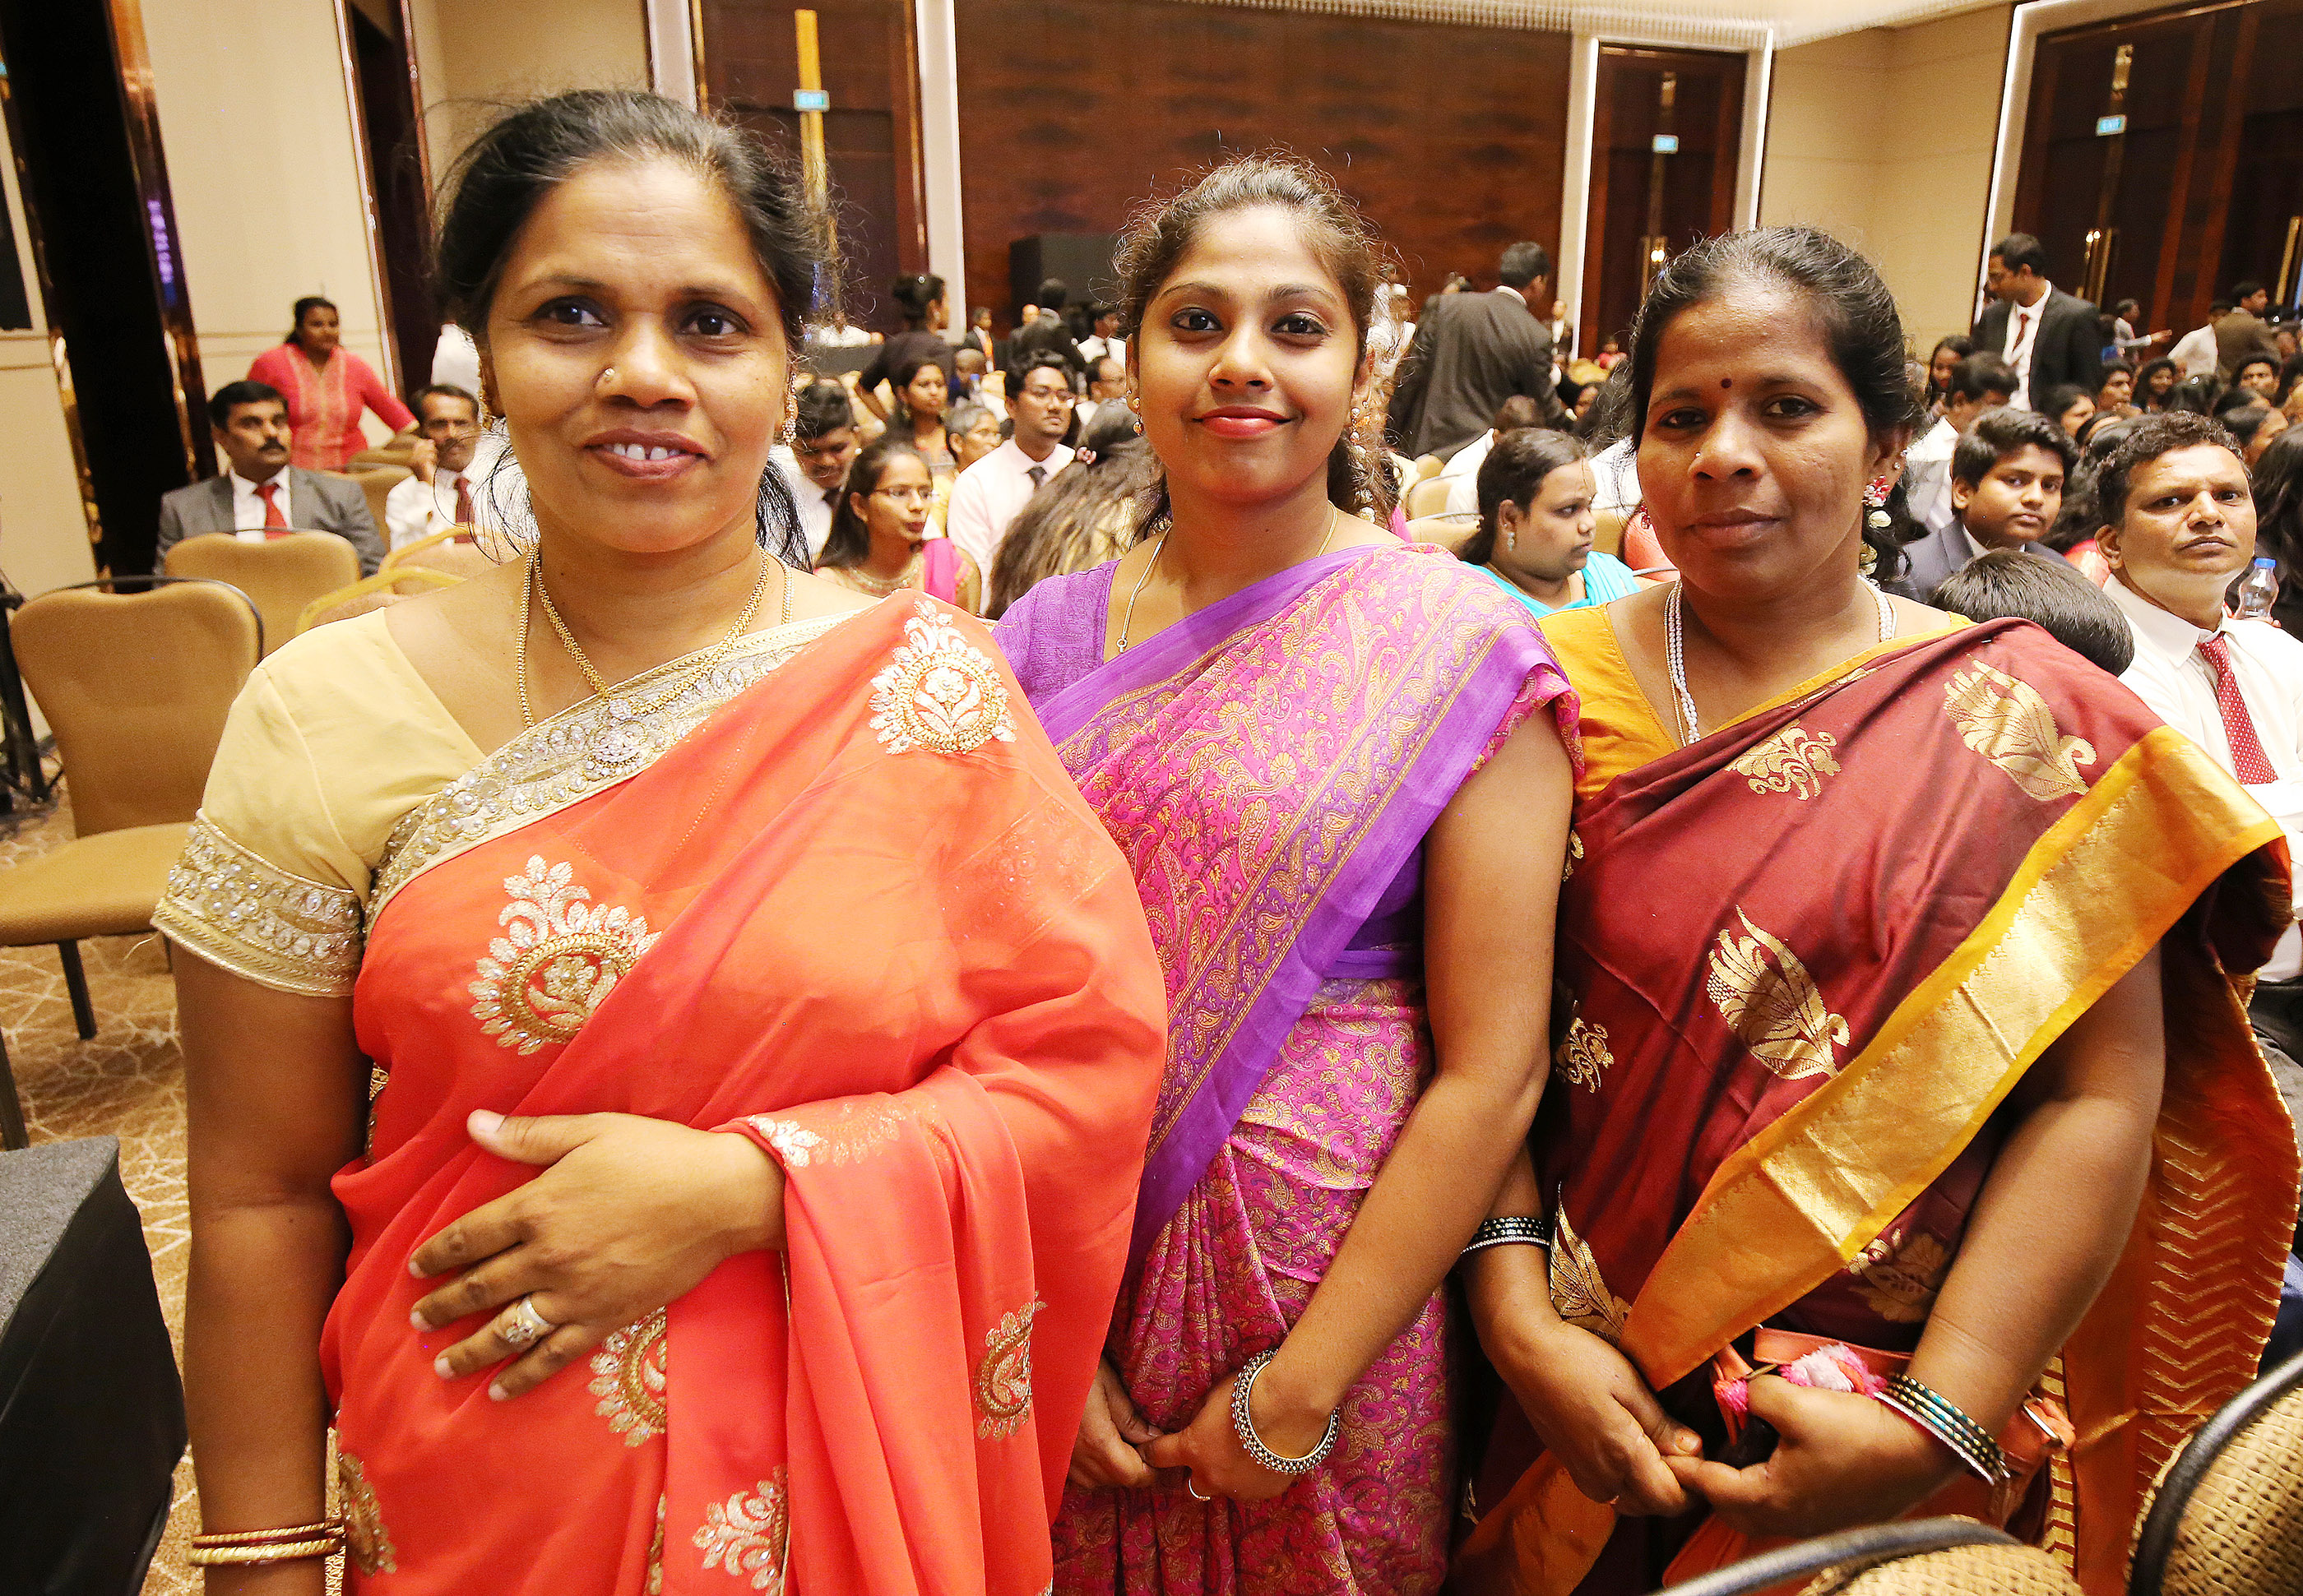 Cousins Kannagi Raui, Pavithra Rajan and Dewvi Thambi attend a devotional with President Russell M. Nelson in Bengaluru, India, on Thursday, April 19, 2018.